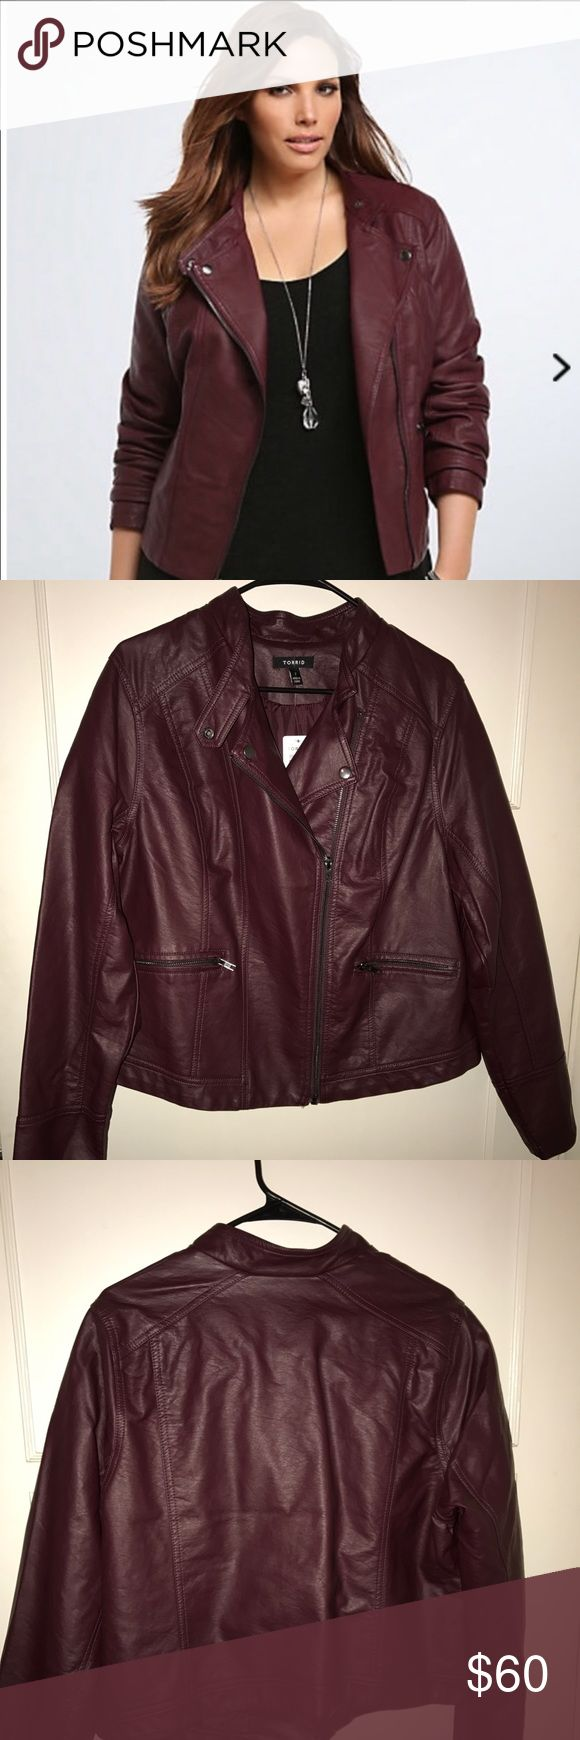 Torrid merlot Moto jacket Brand new, beautiful color, super cute jacket torrid Jackets & Coats